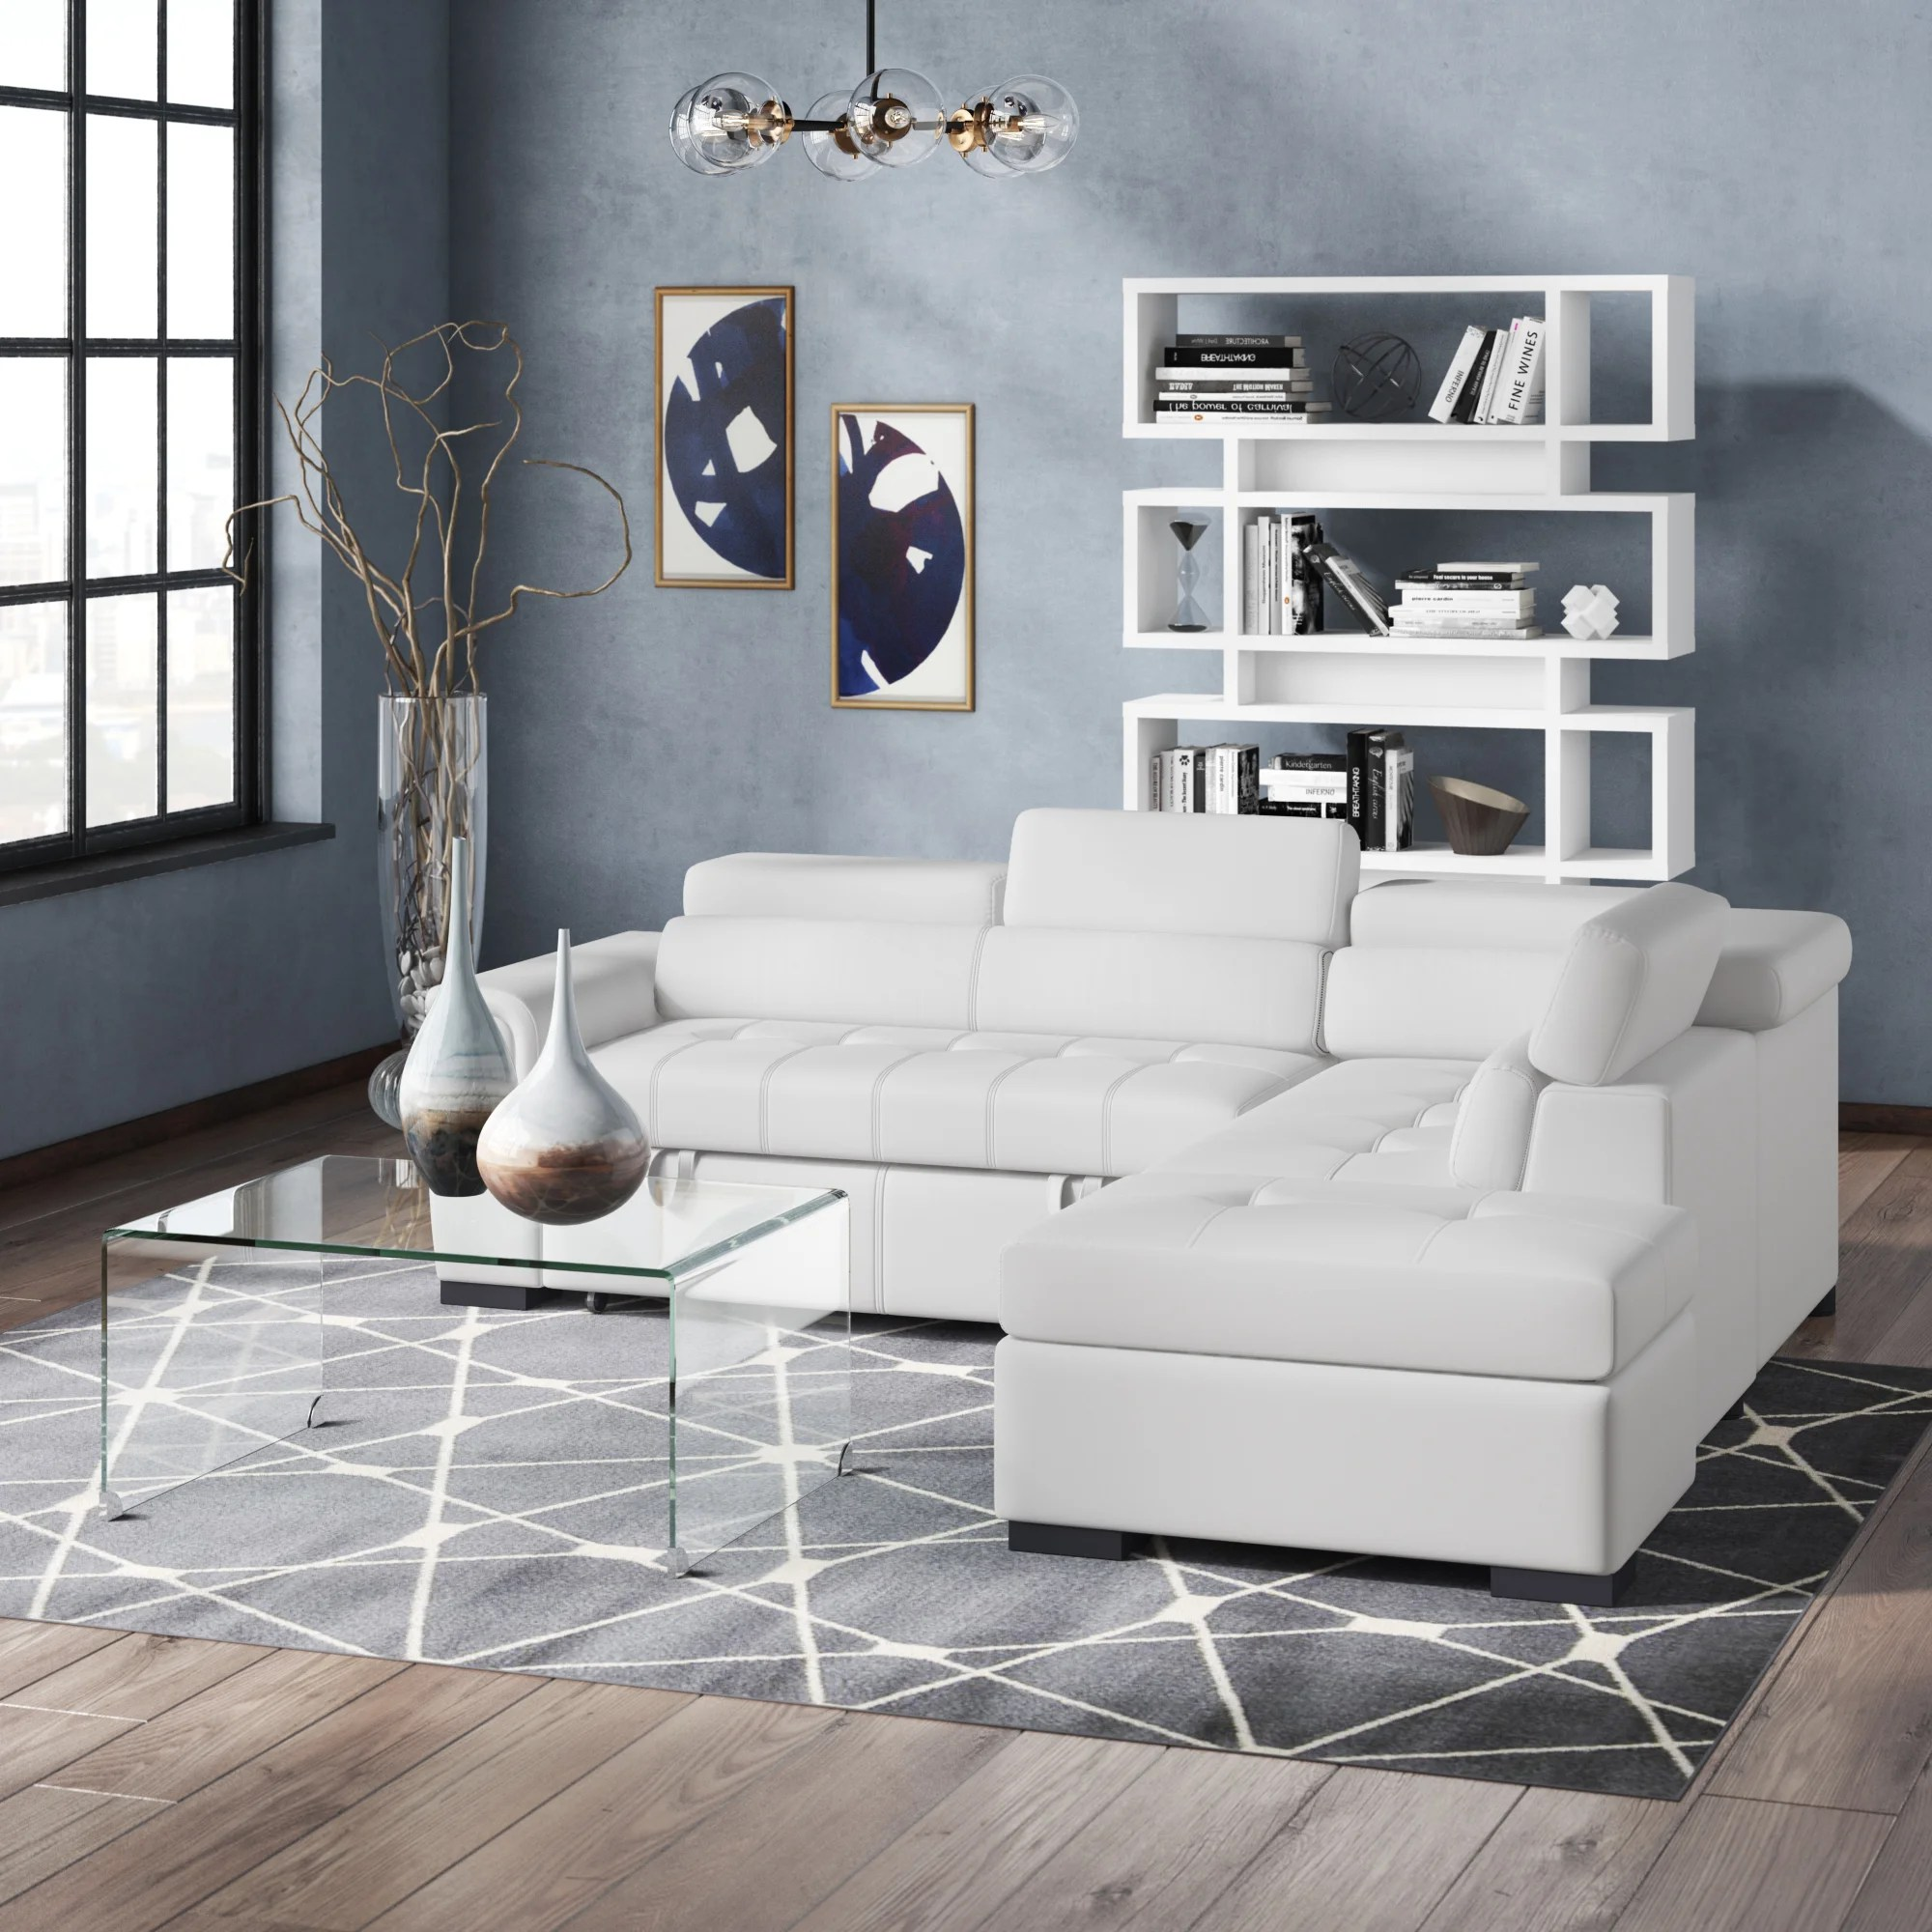 126 large sectional